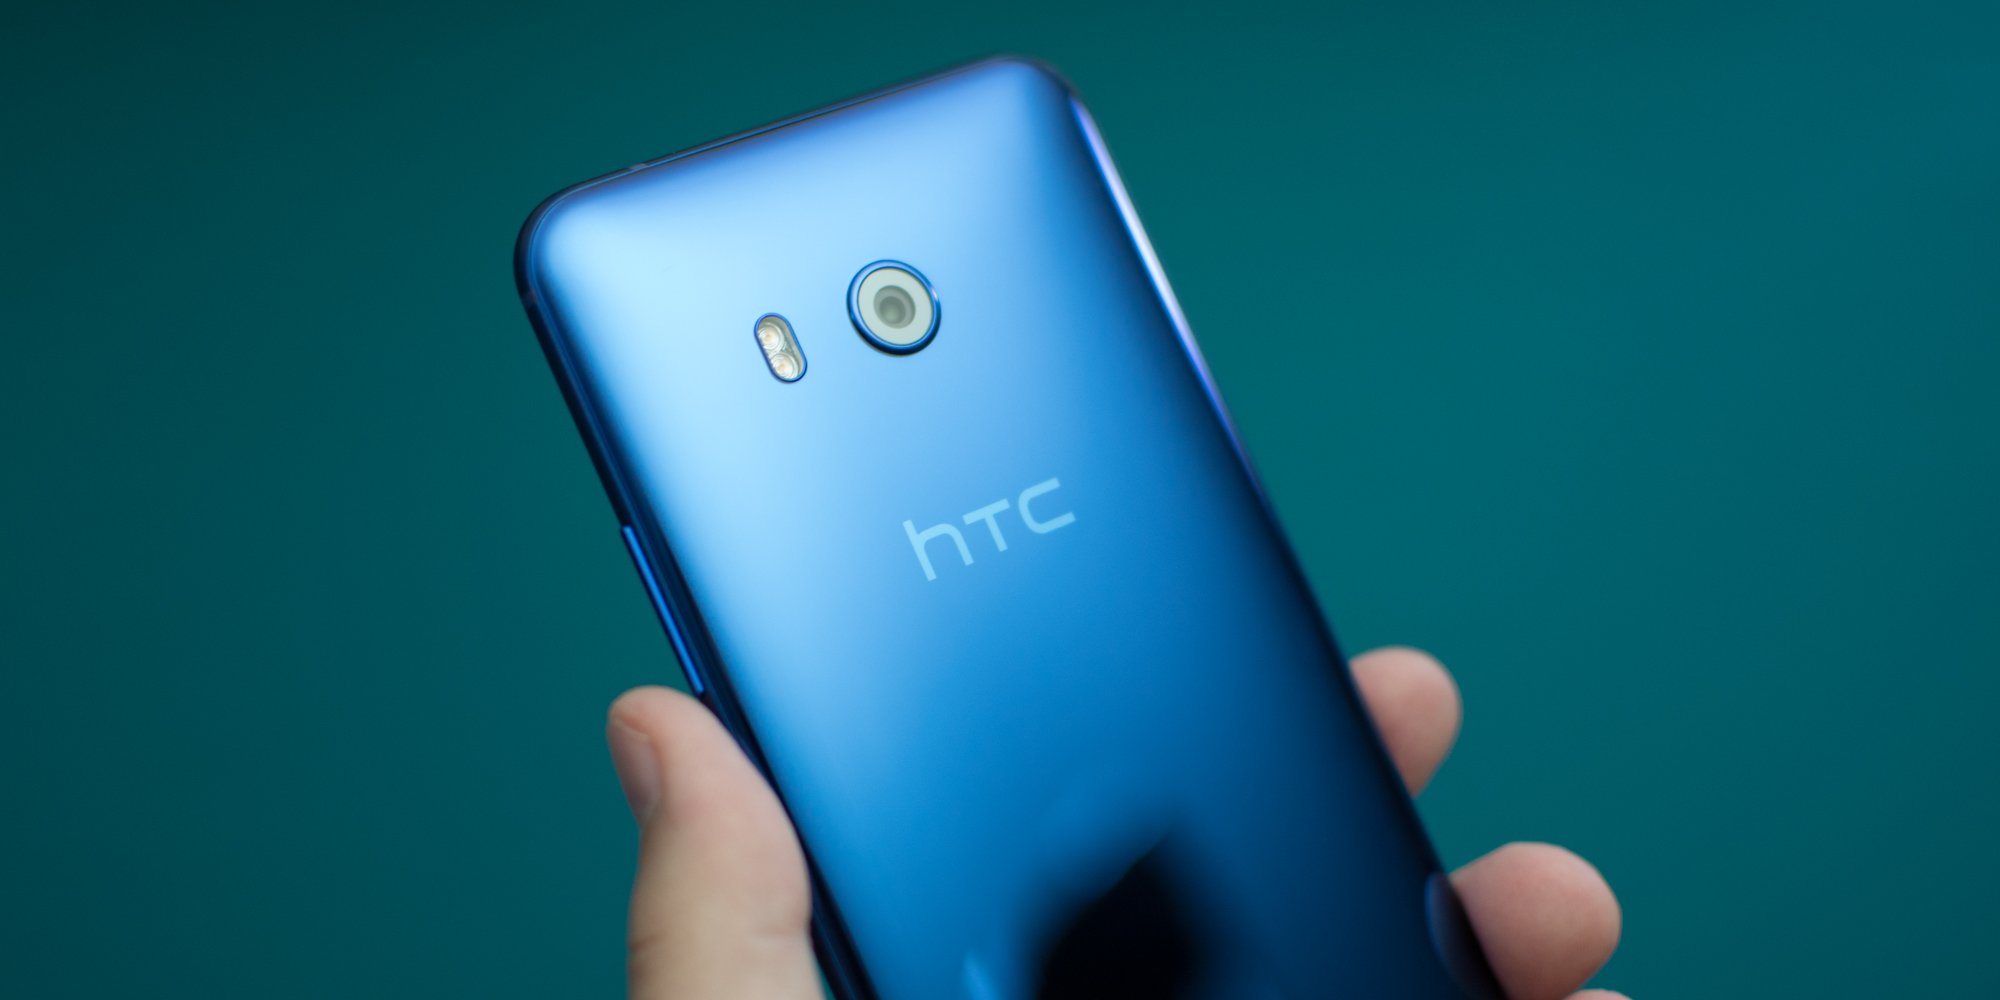 HTC U11 receiving long-awaited Android Pie update, but only in some regions